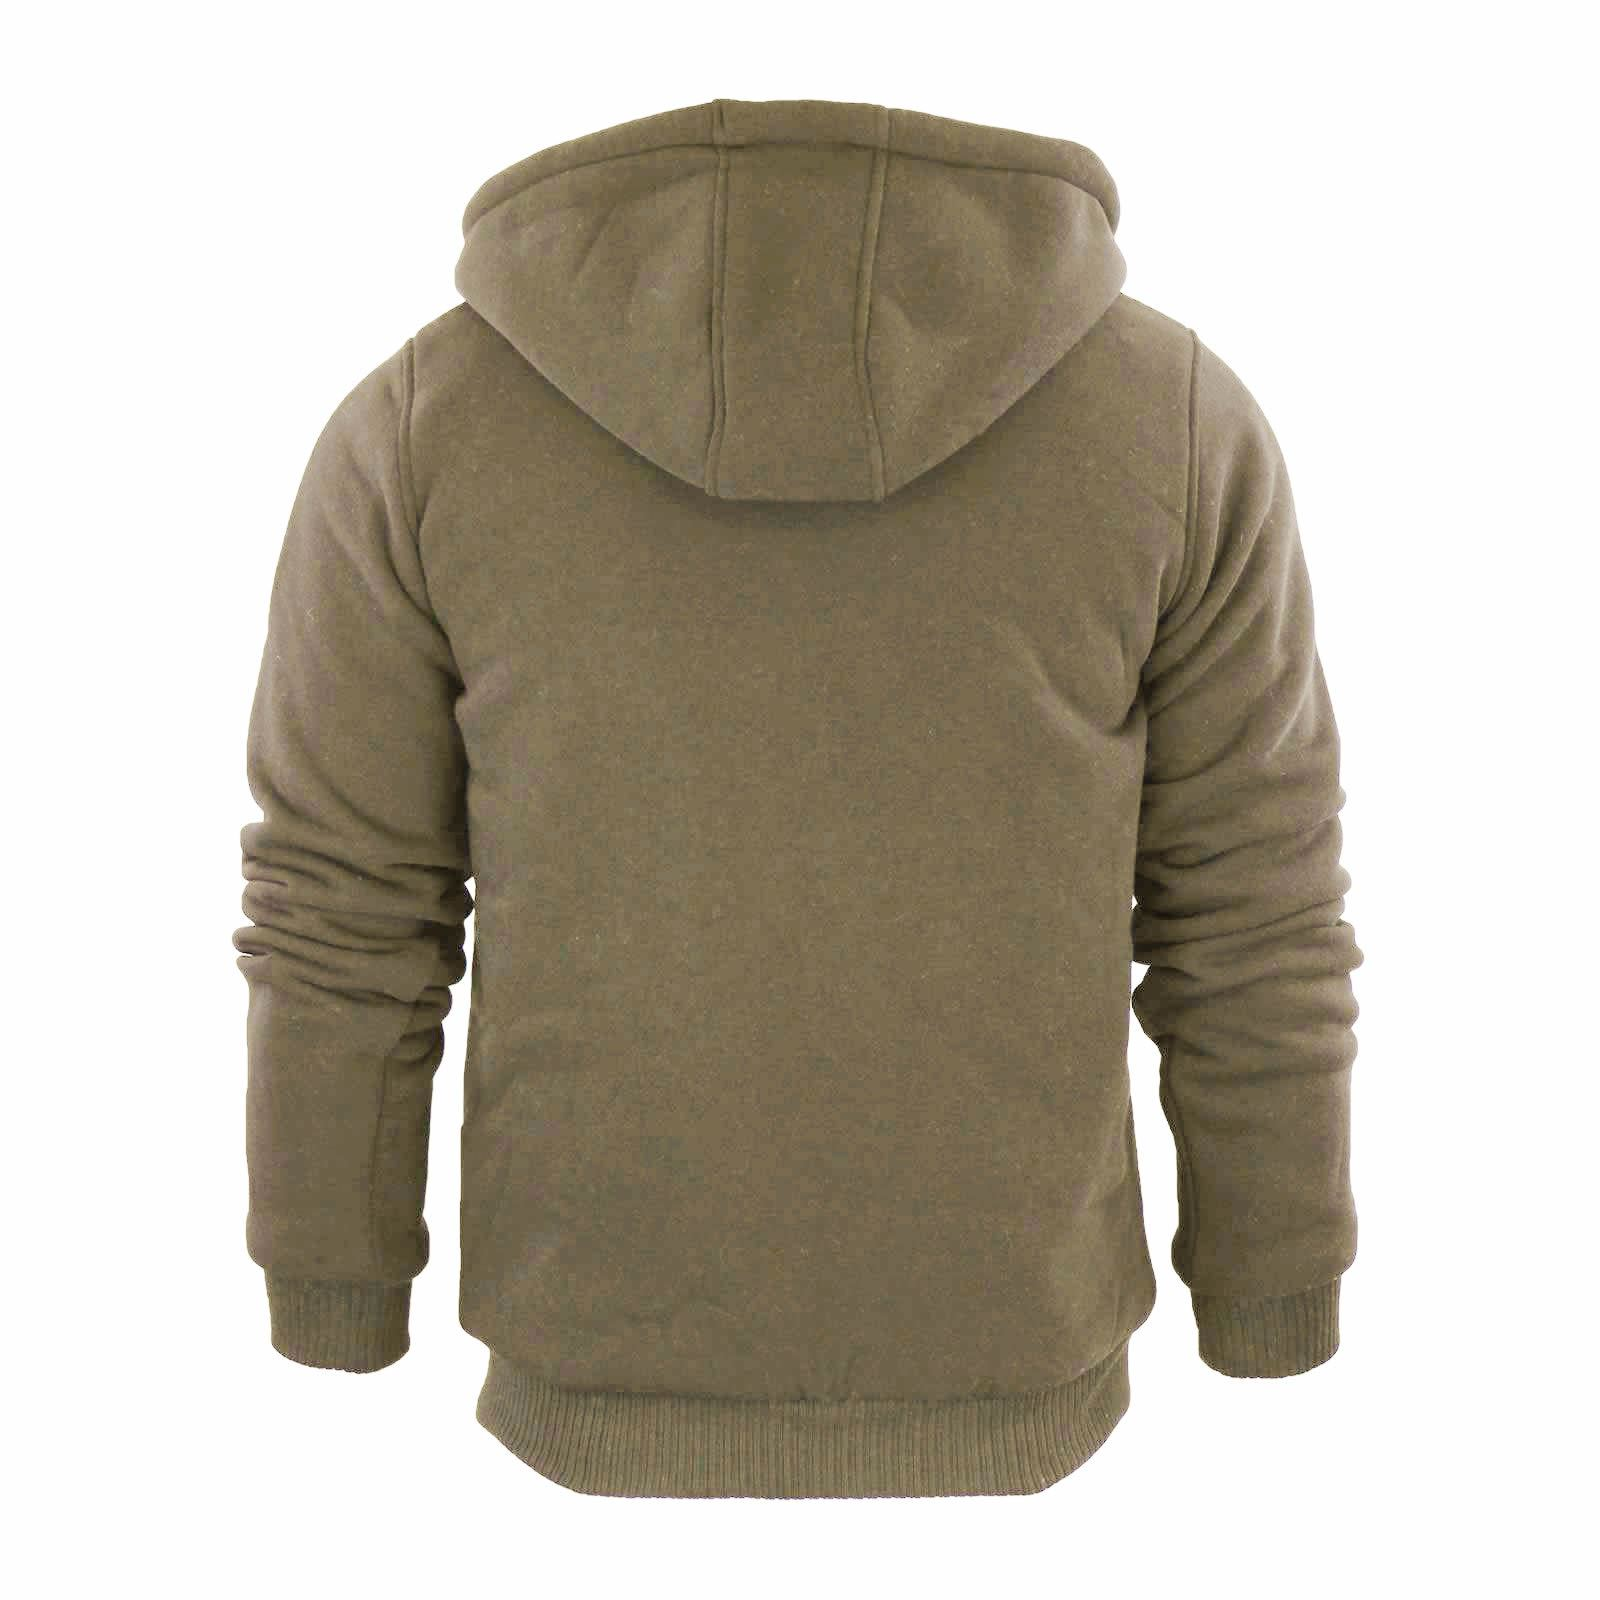 Brave-Soul-Zone-Mens-Hoodie-Sherpa-Fleece-Lined-Zip-Up-Hooded-Sweater thumbnail 12